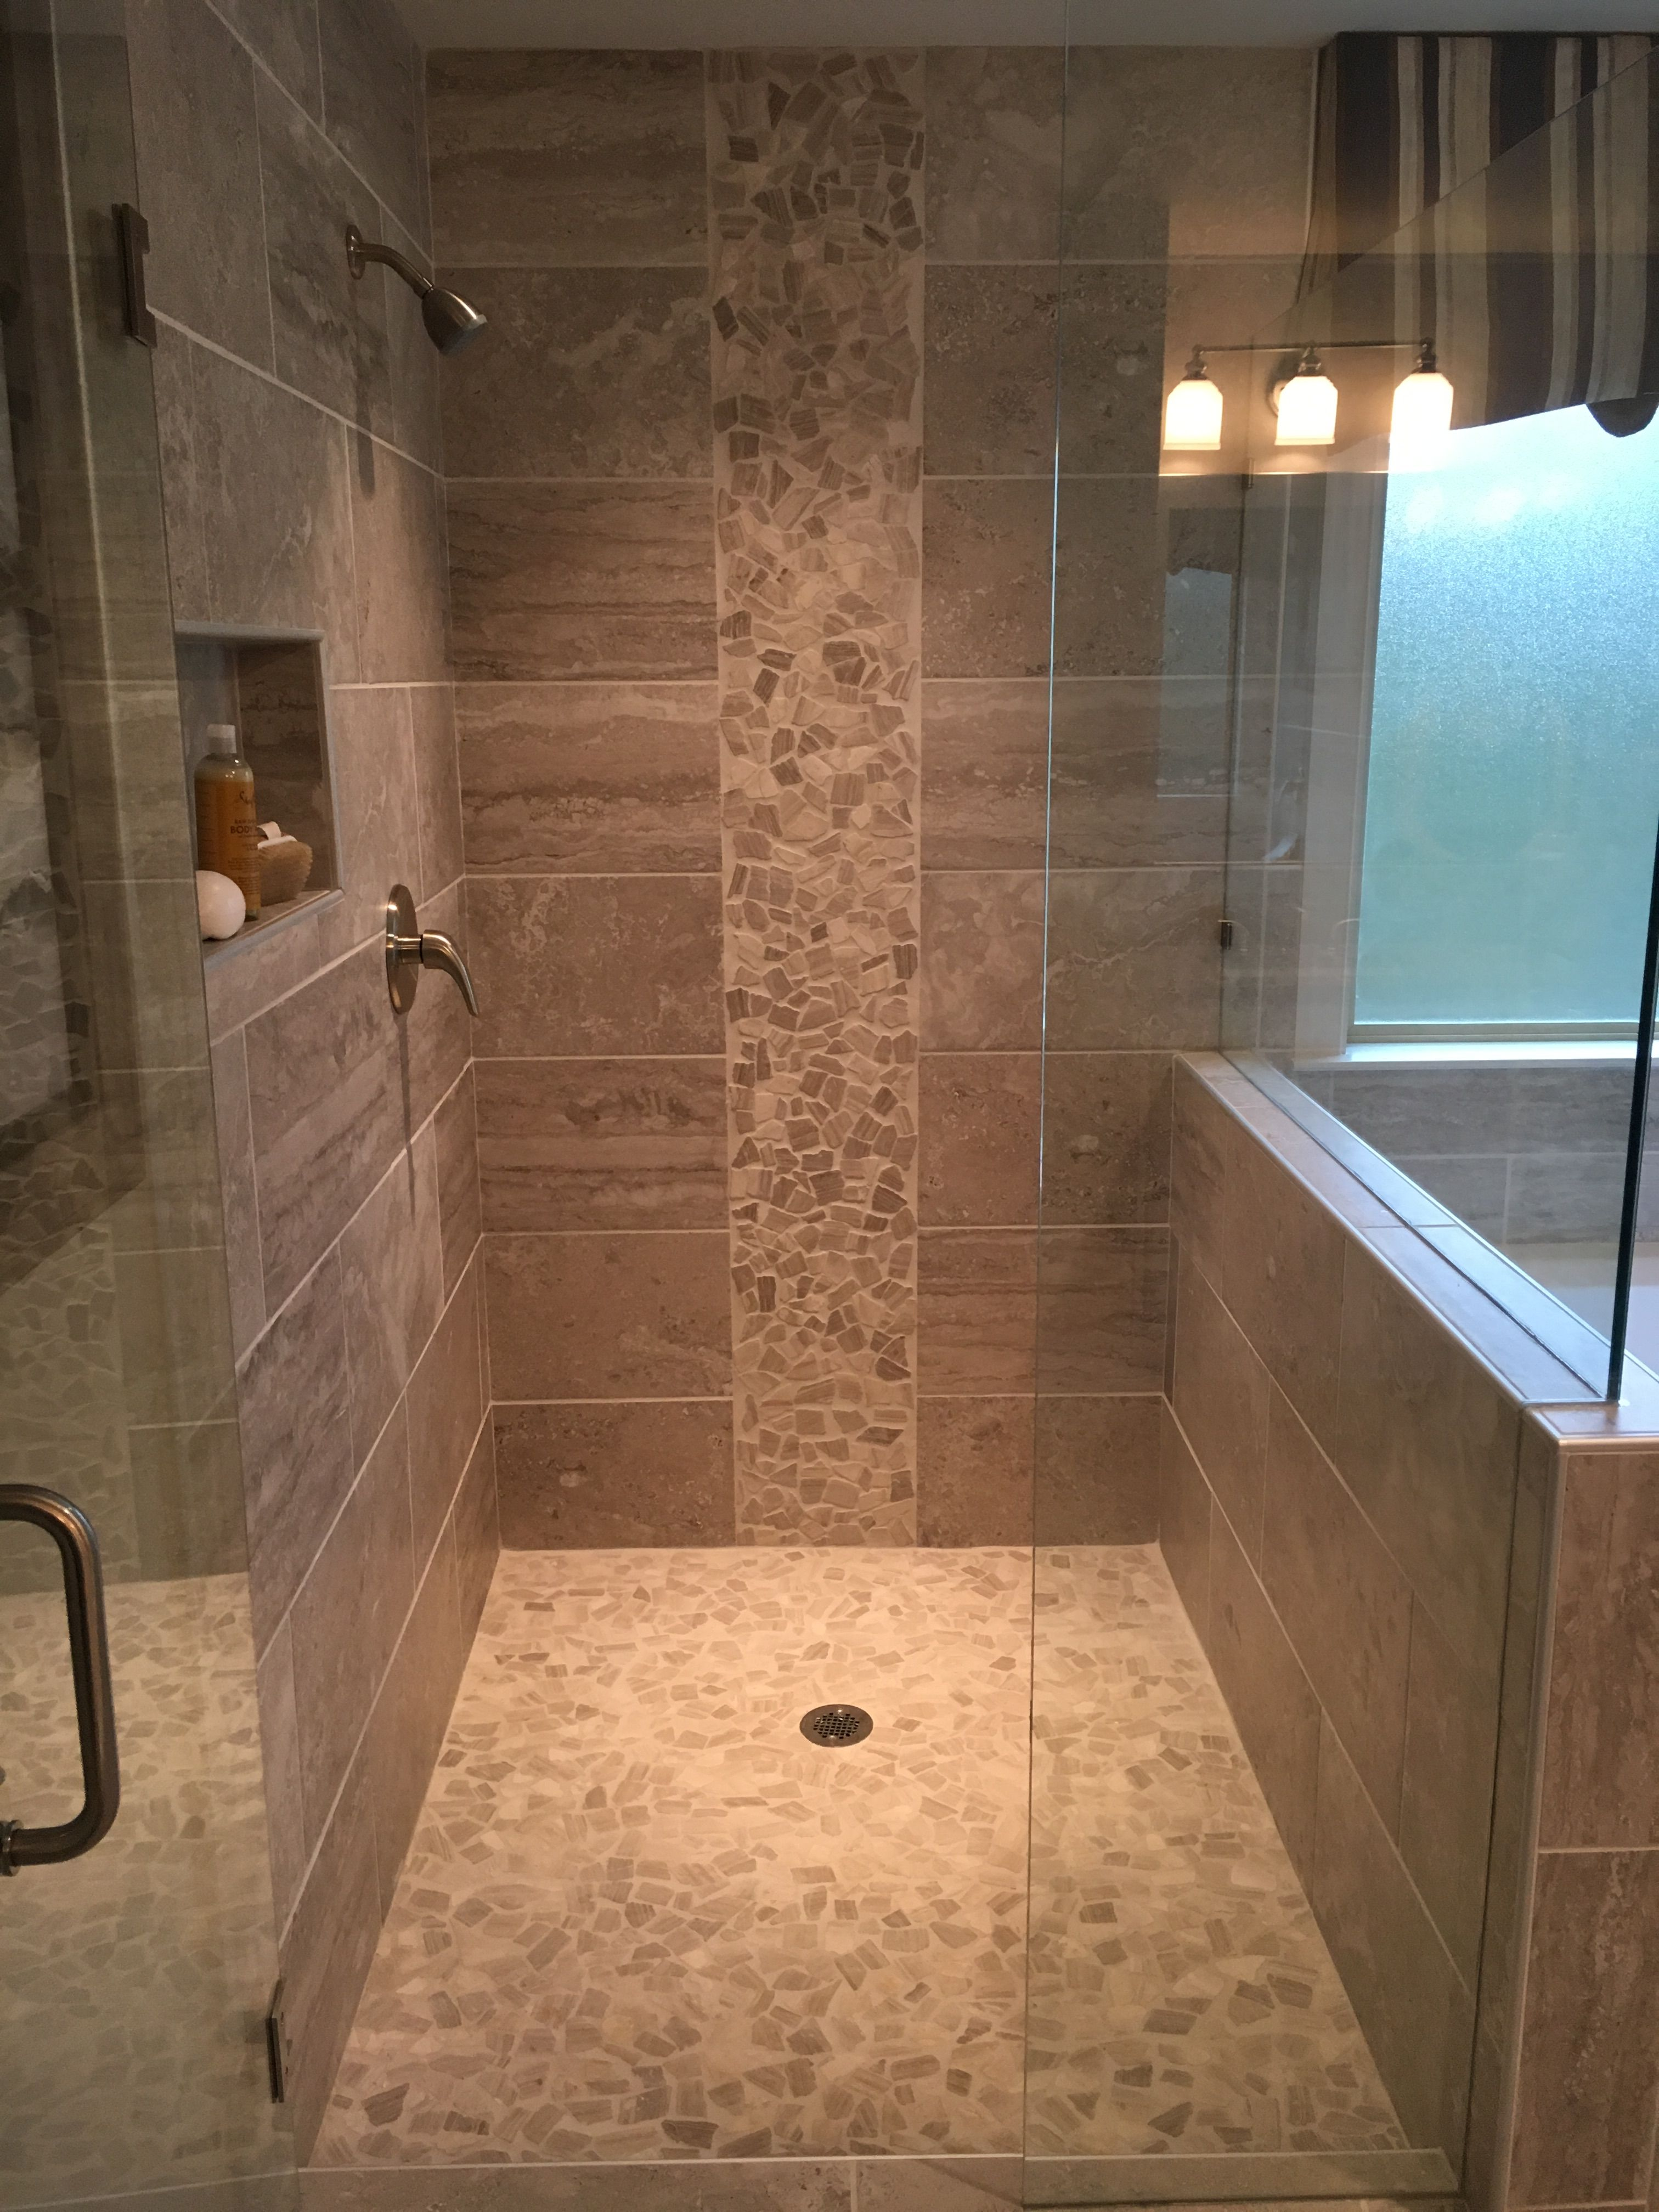 Pin By Kearston Hardaway On Home Decor And Household Ideas Bathroom Design Master Bath Remodel Shower Remodel